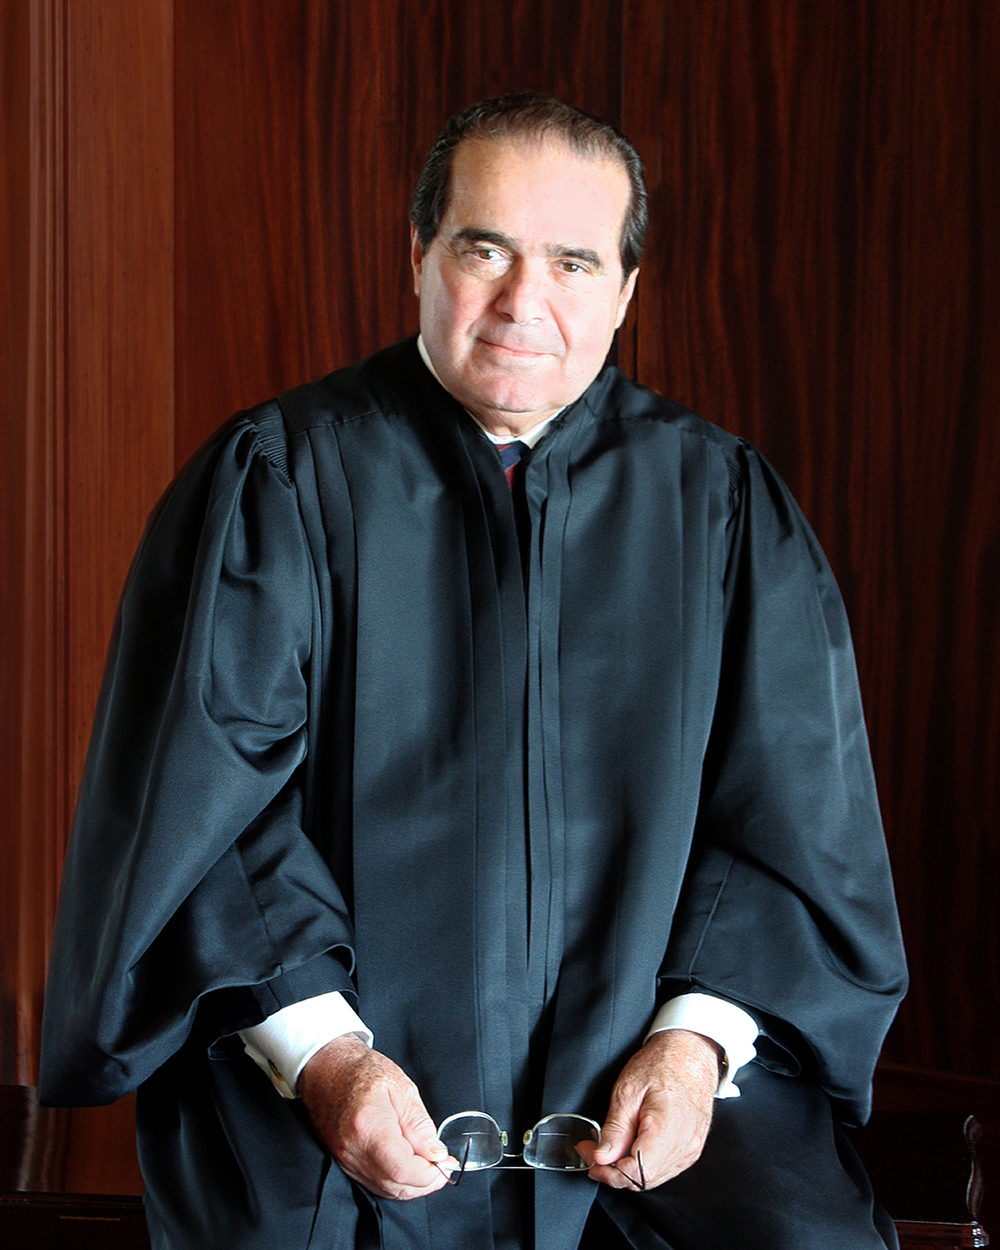 antonin_scalia-photograph.jpg